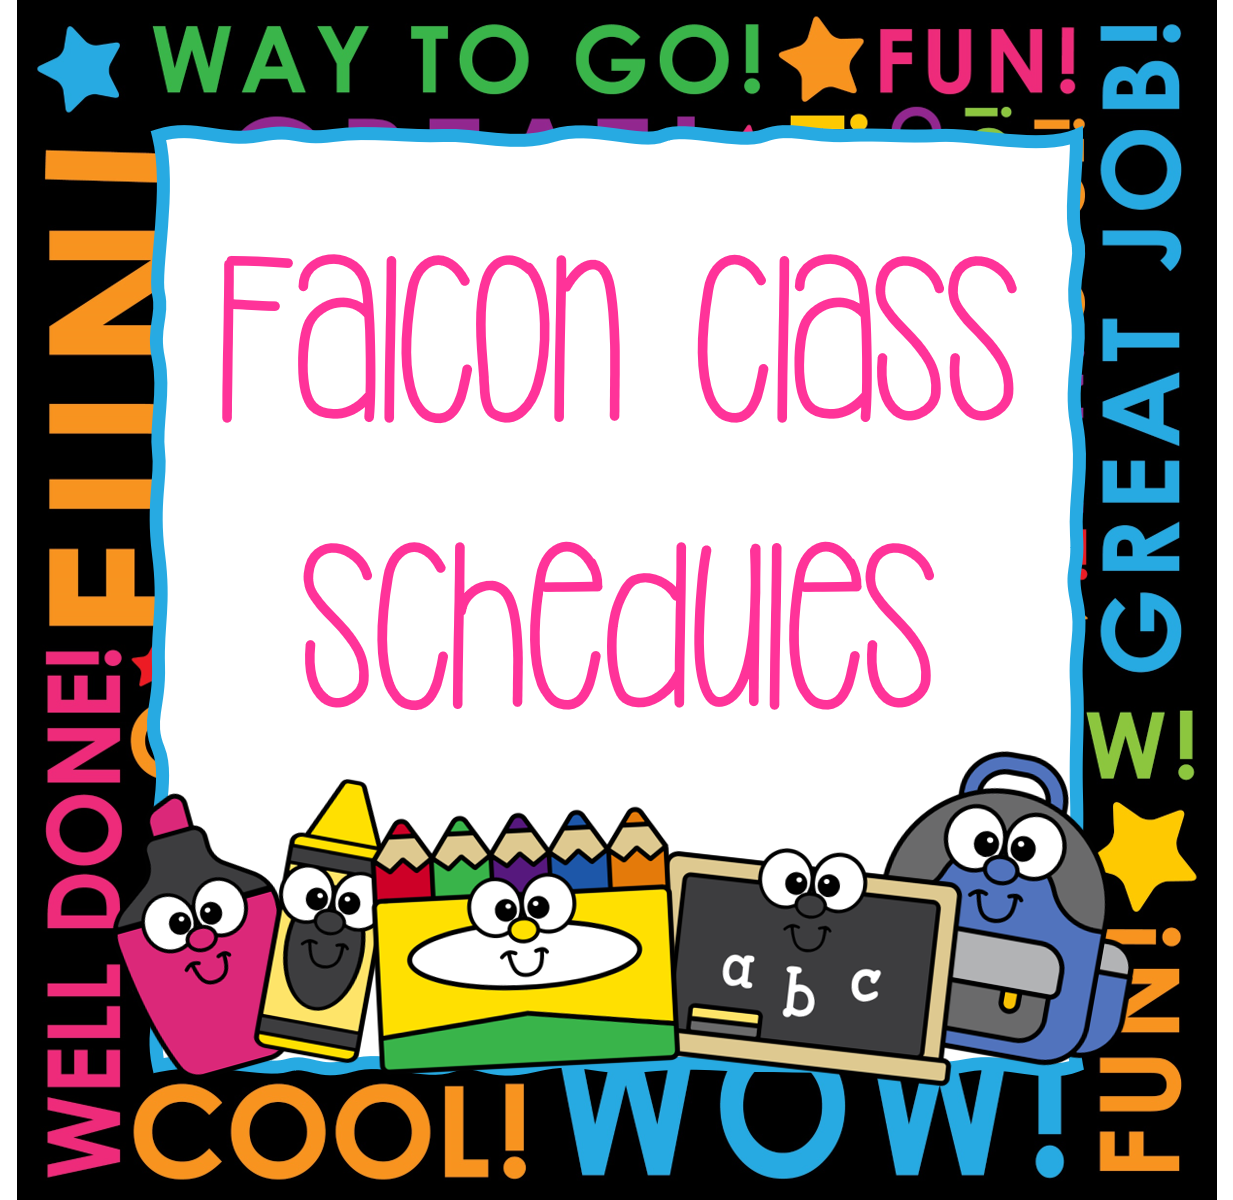 Falcon Class Schedules